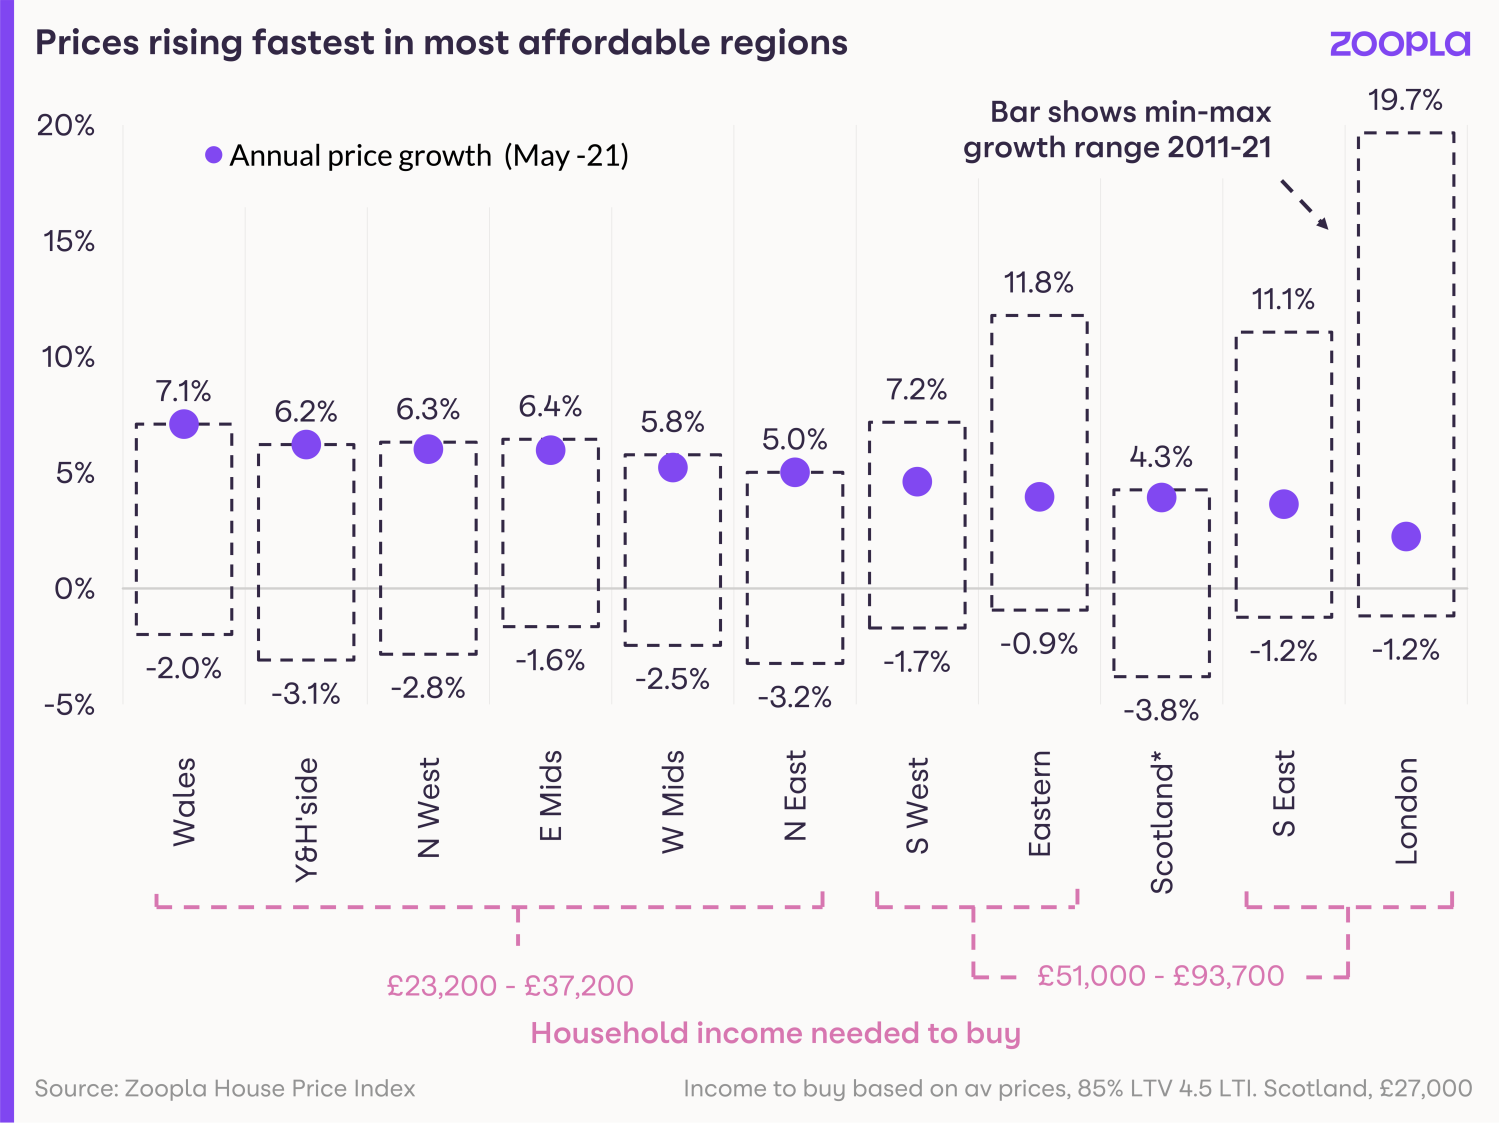 Visual showing house prices rising fastest in most affordable regions